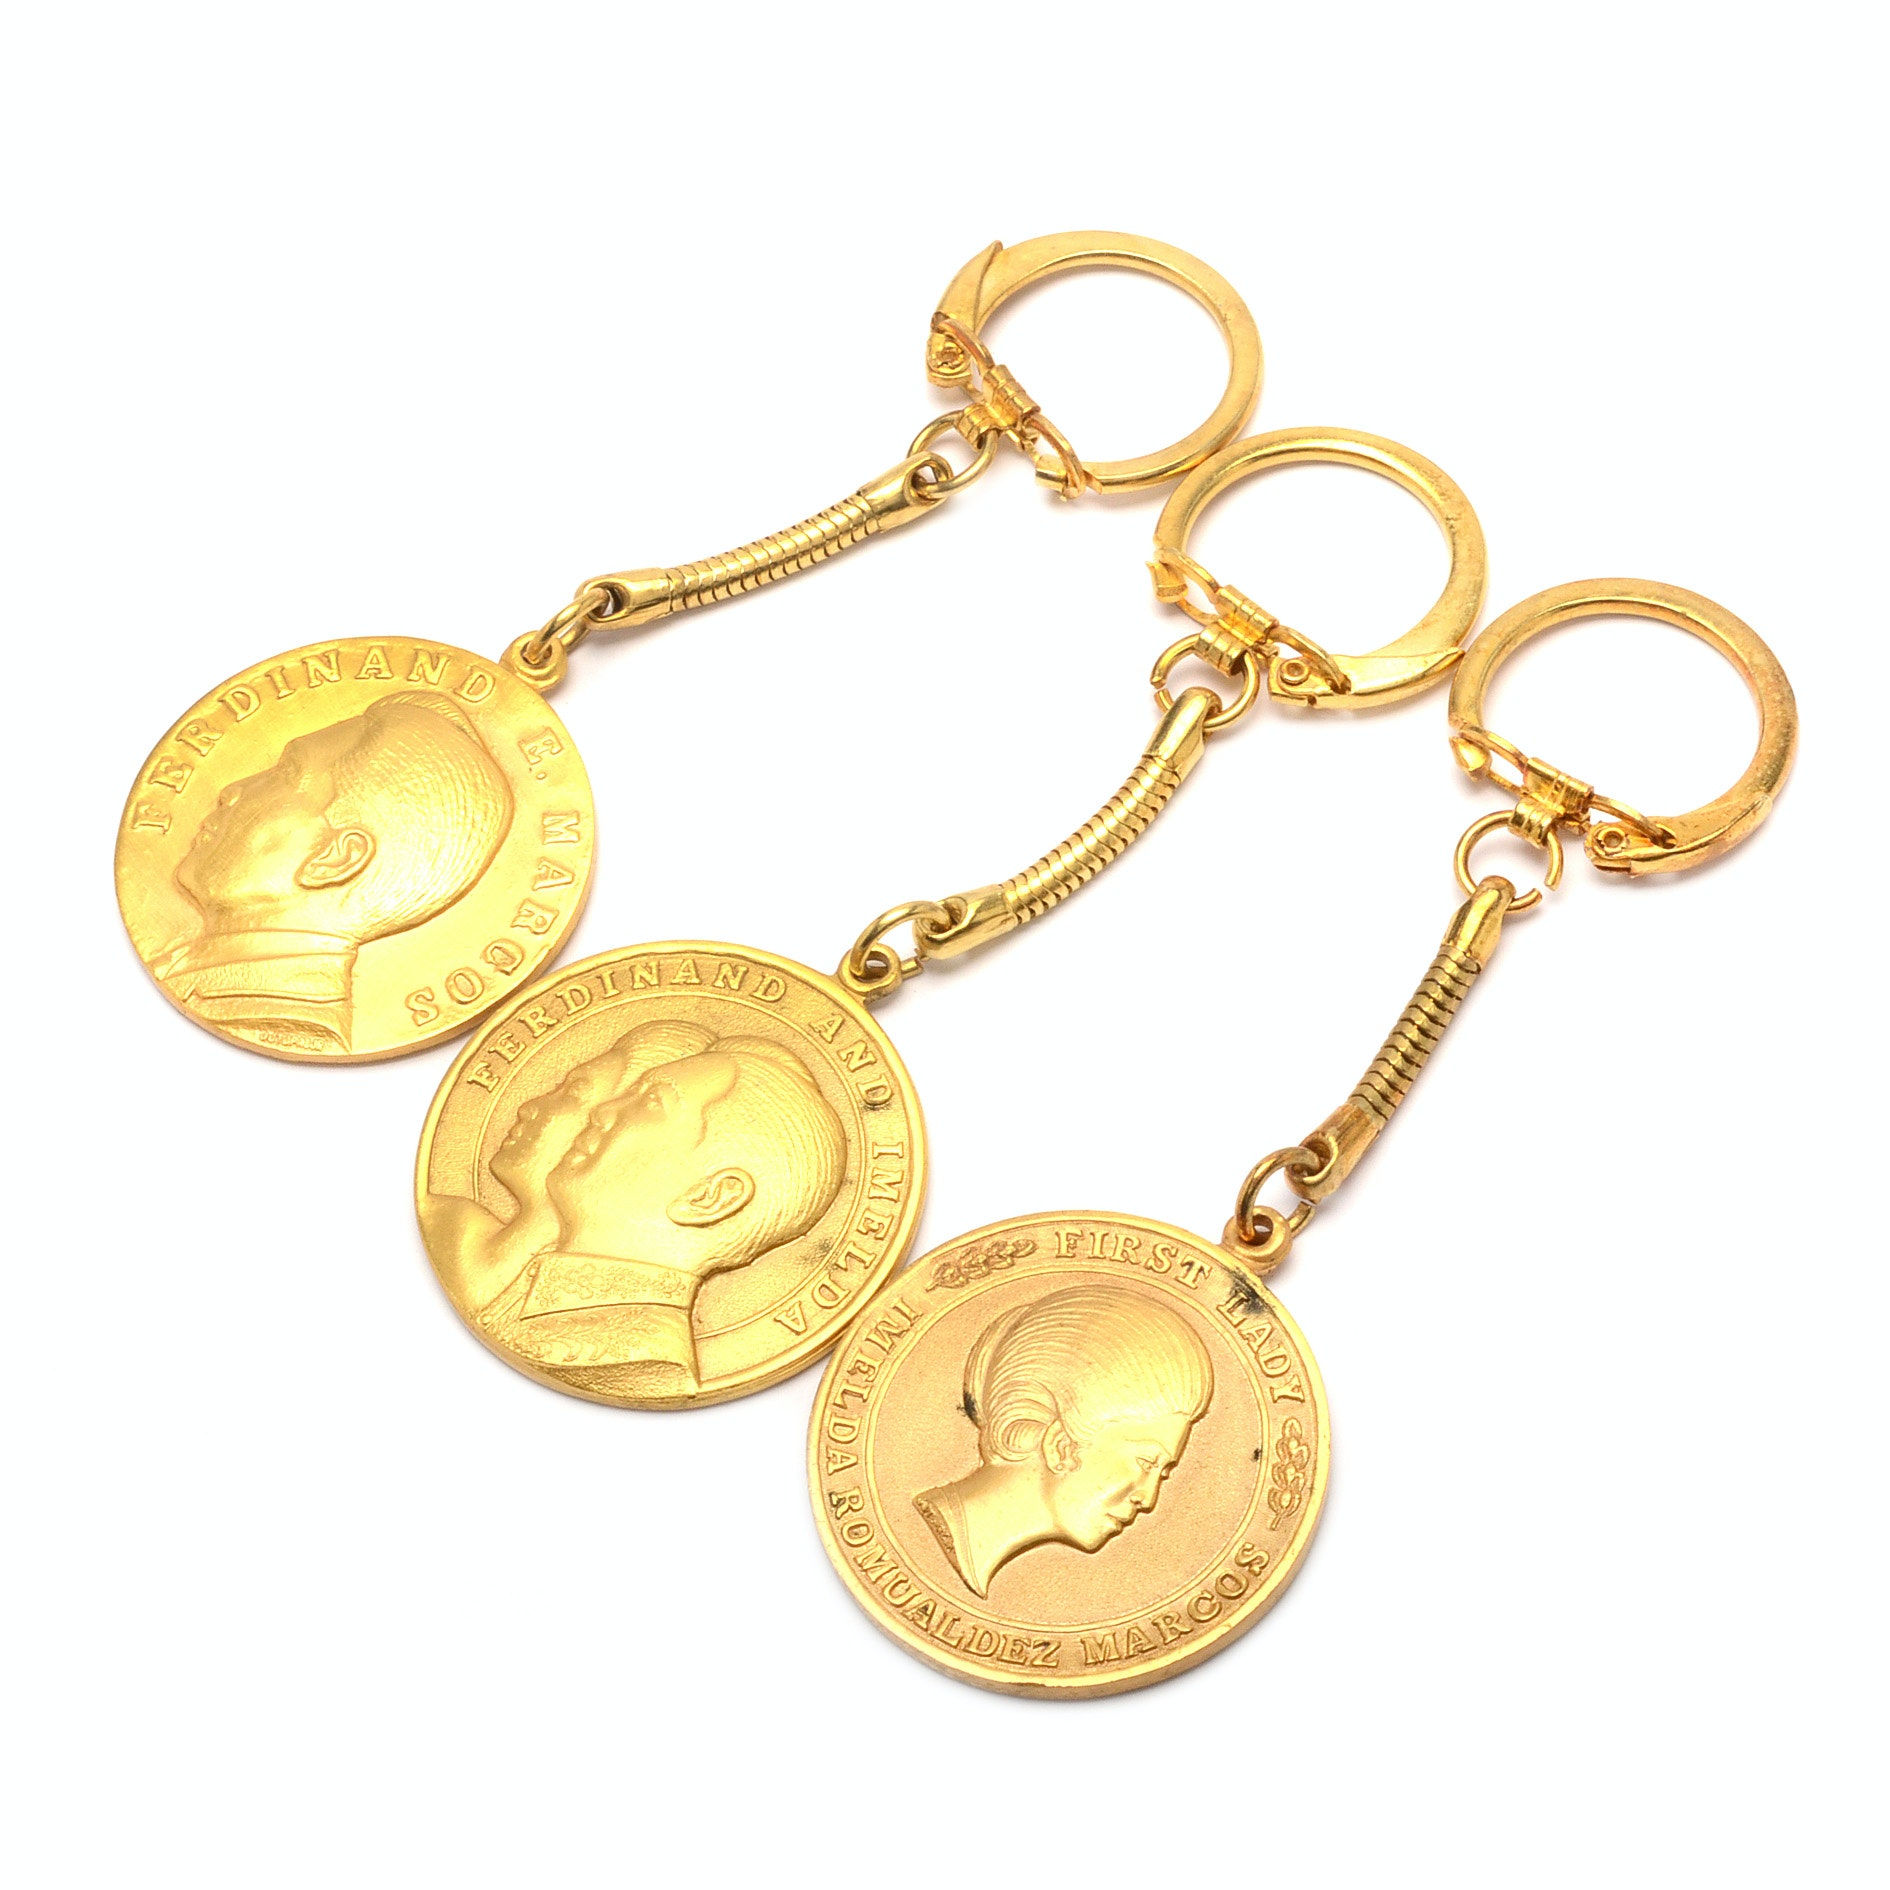 Solid Brass Key Chains Honoring Ferdinand and Imelda Marcos